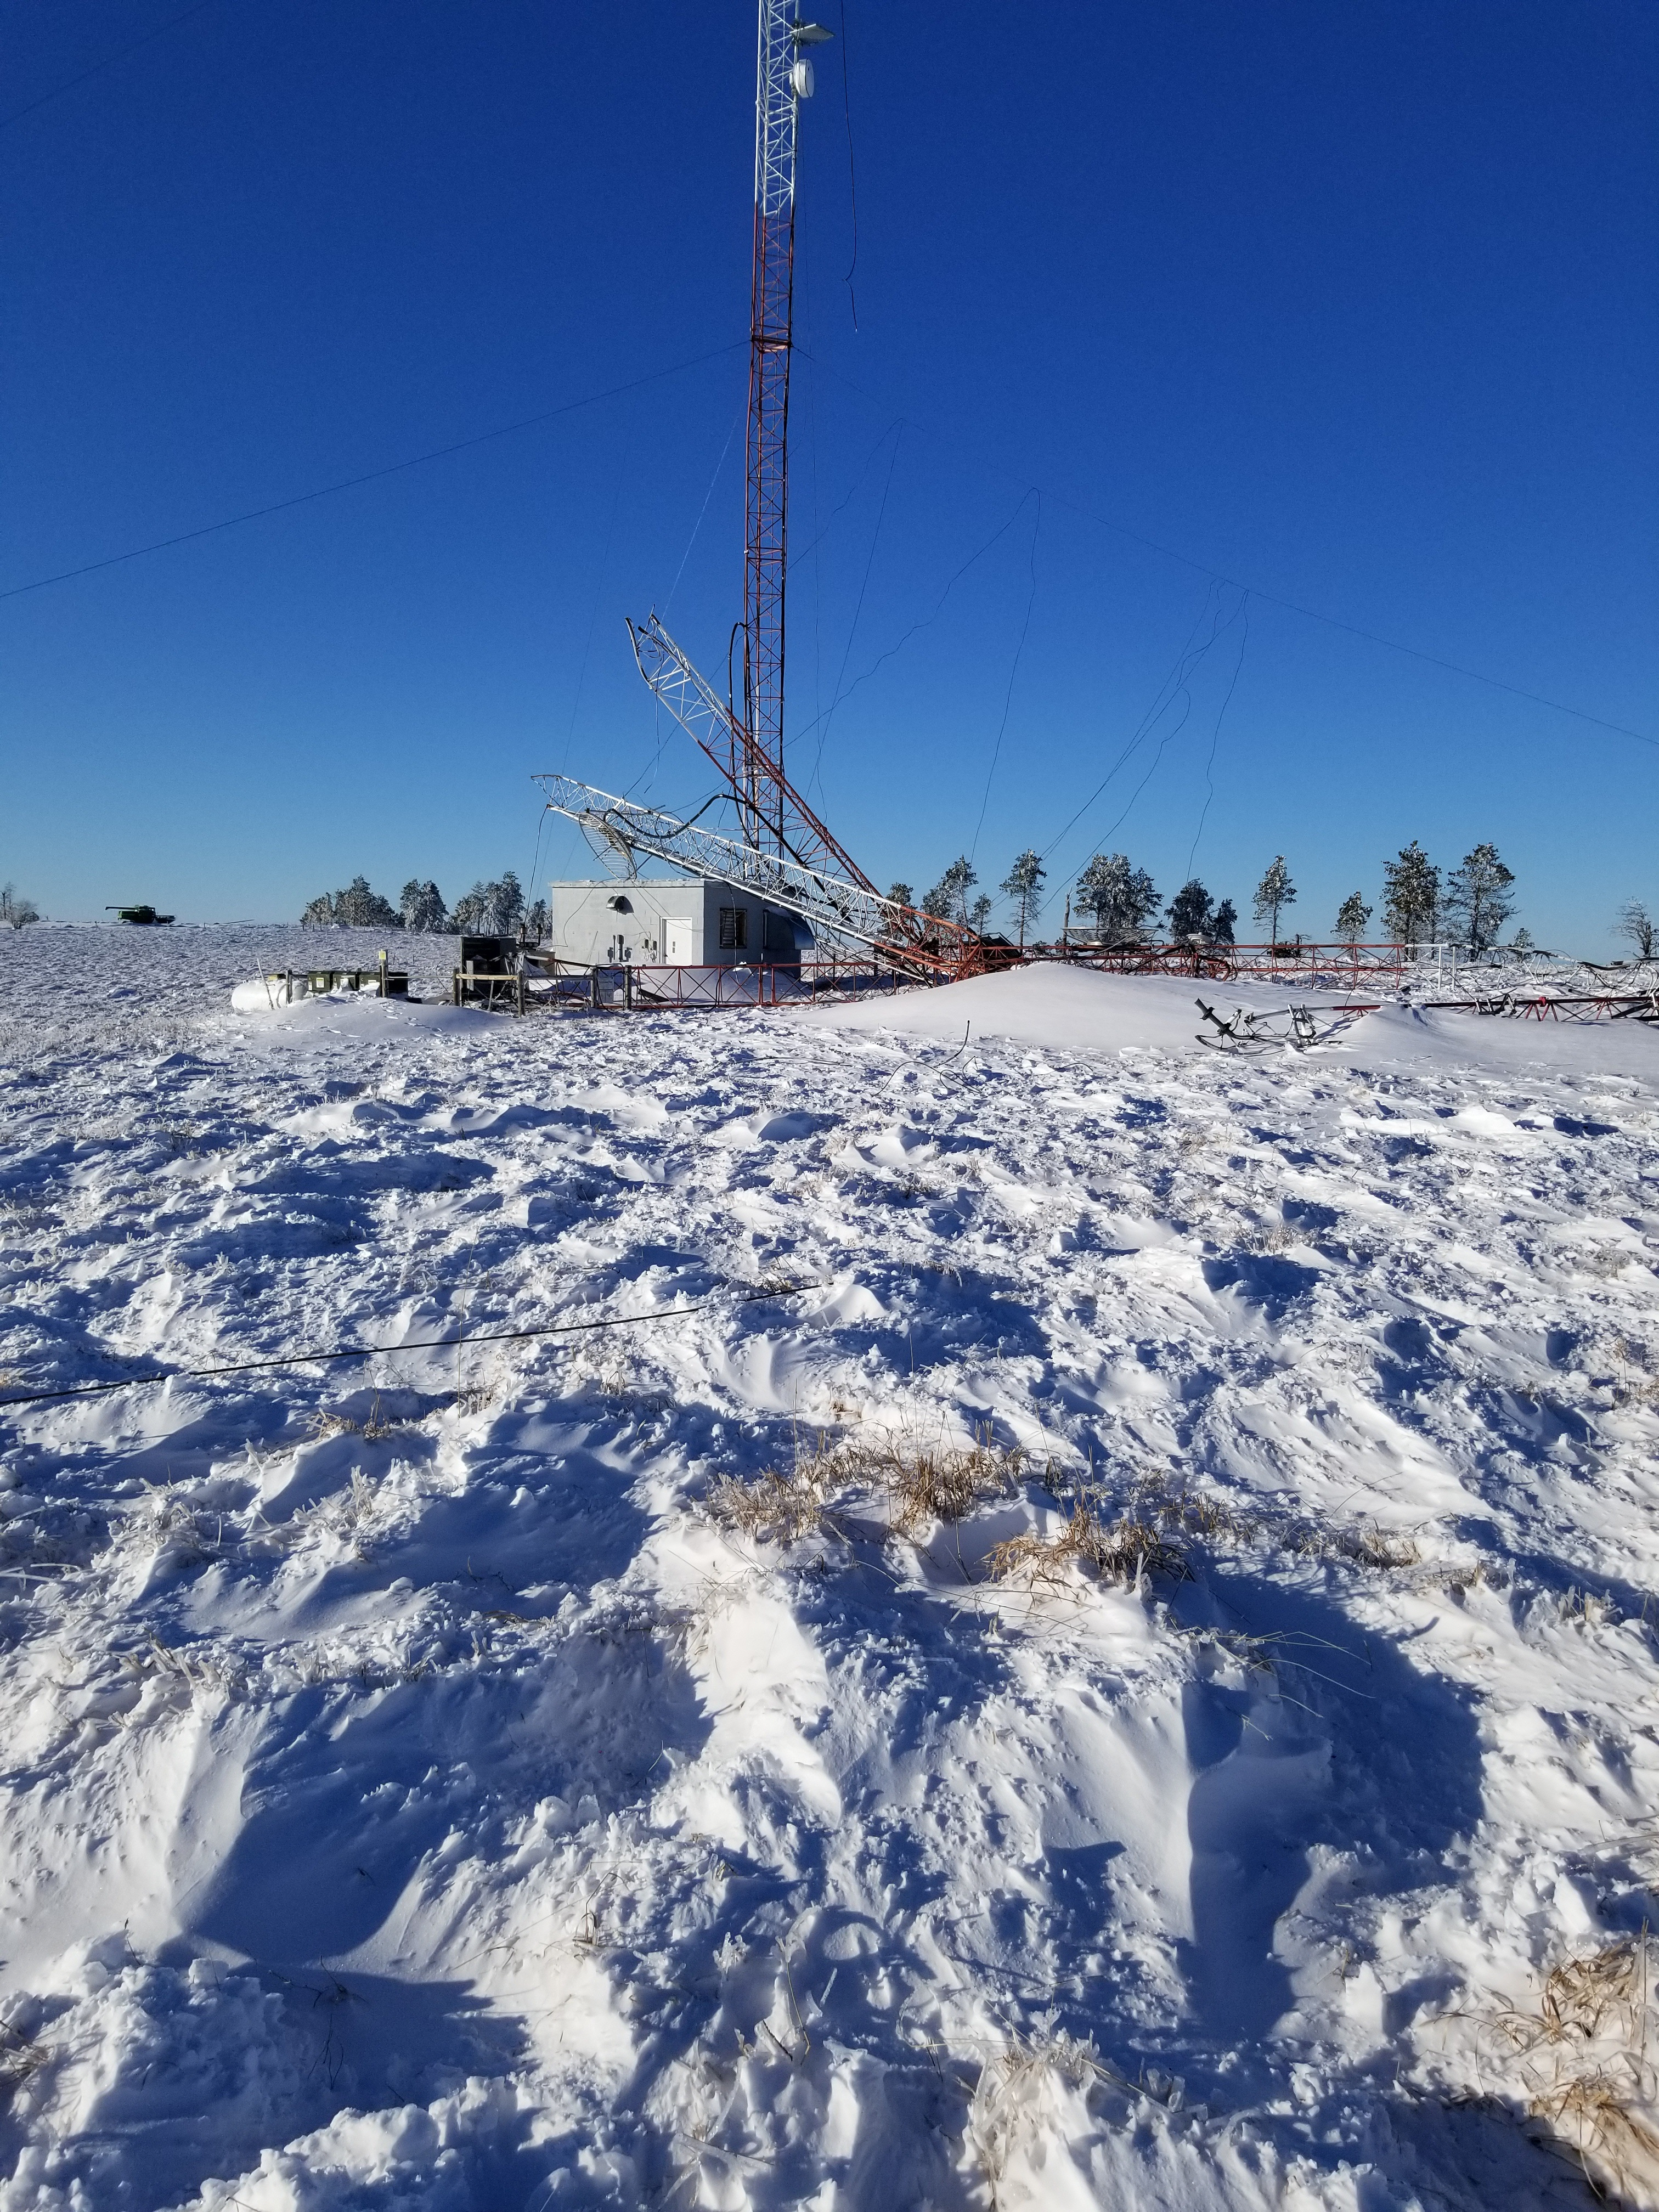 Collapsed radio tower